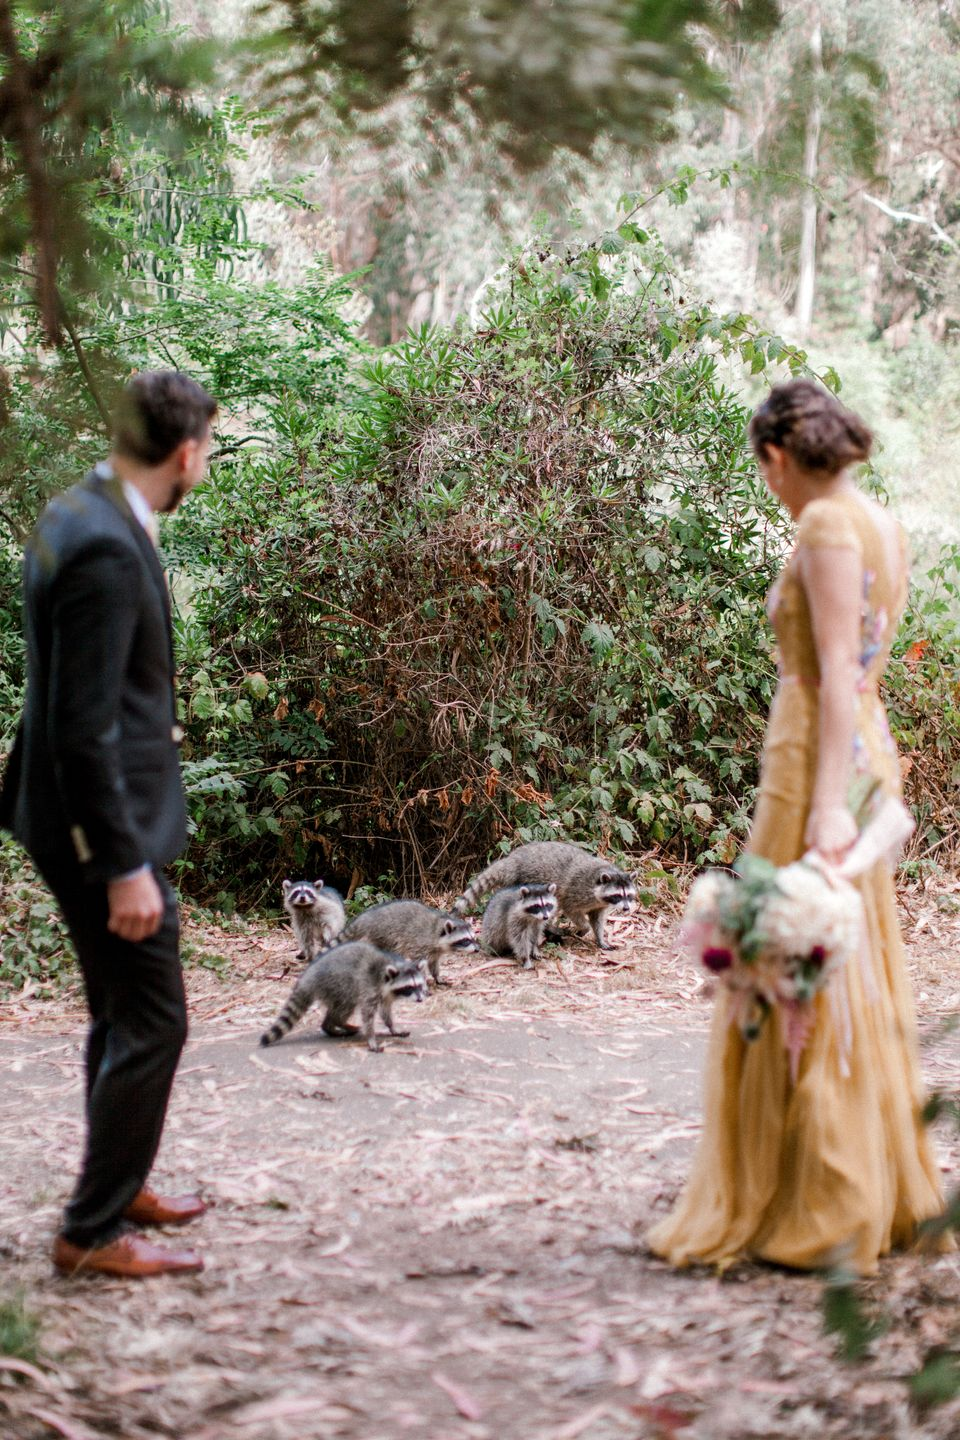 A Gang Of Raccoons Crashed This Bride And Groom's Wedding Photos